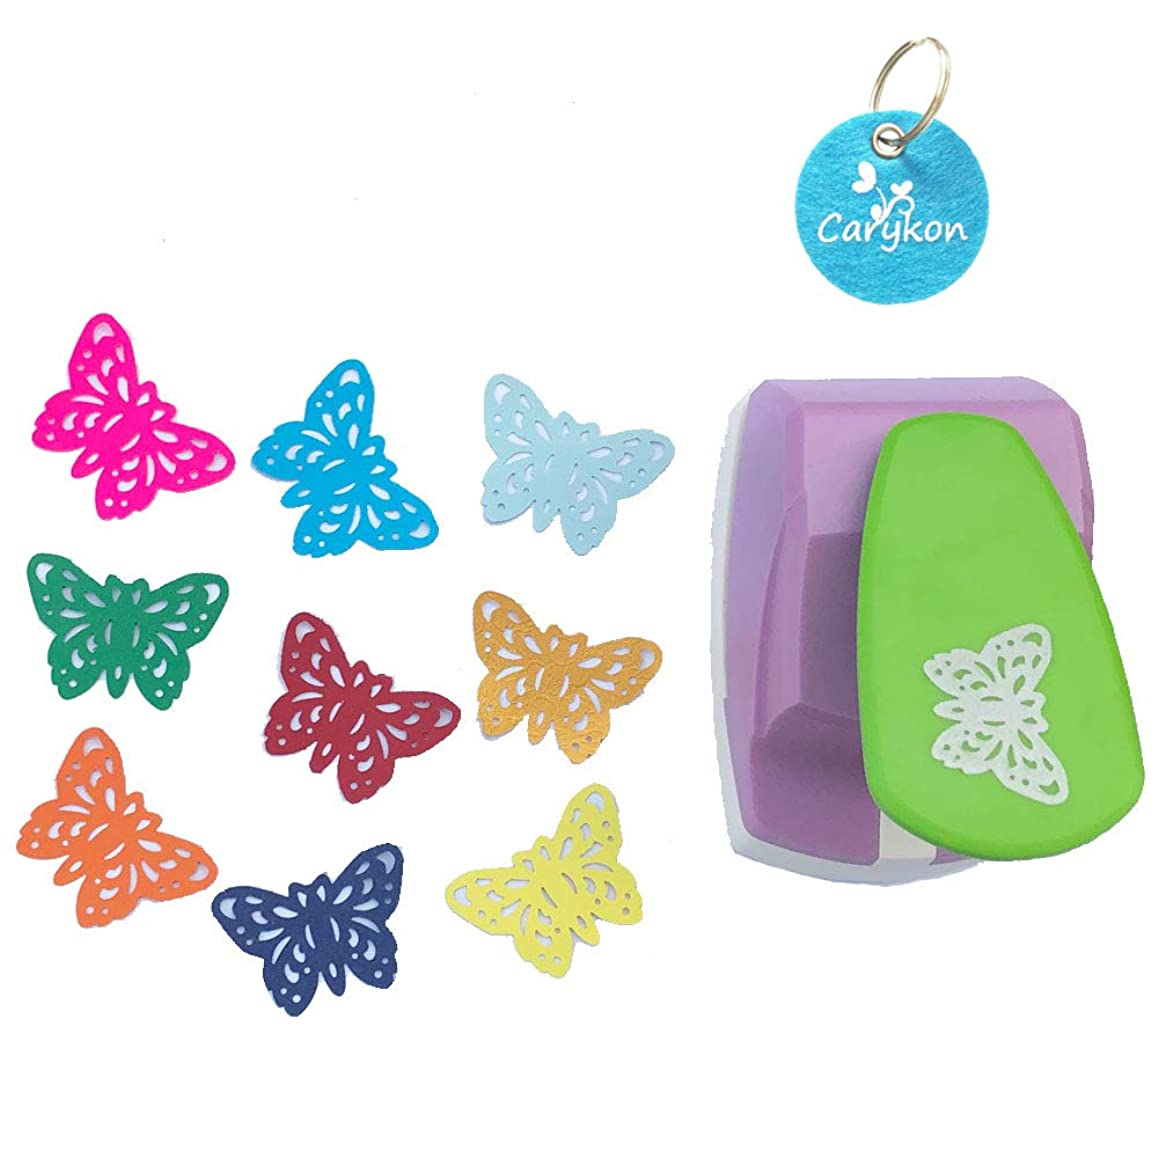 Carykon 2 Inch Lever Craft Punch Paper Punches Engraving Hole Punch (Butterfly-Gorgeous)